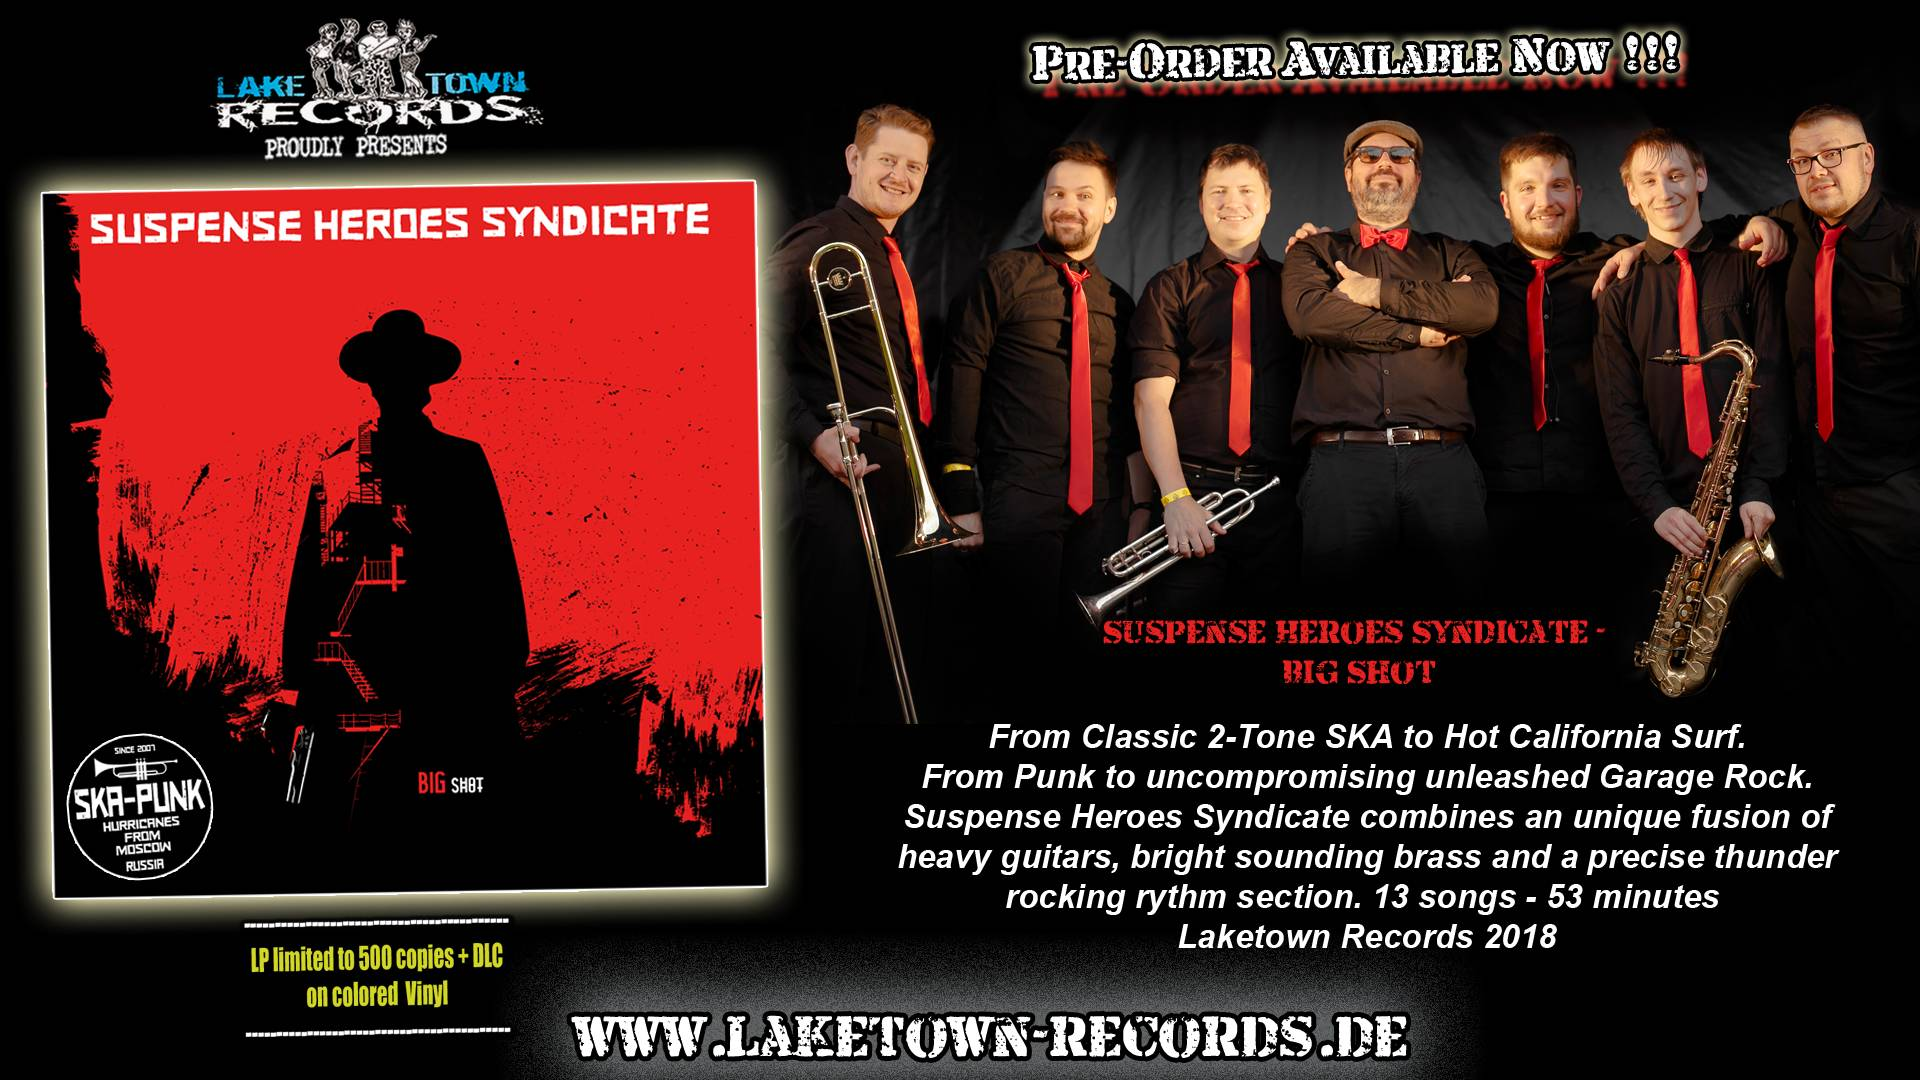 SUSPENSE HEROES SYNDICATE - BIG SHOT (LP) PRE-ORDER